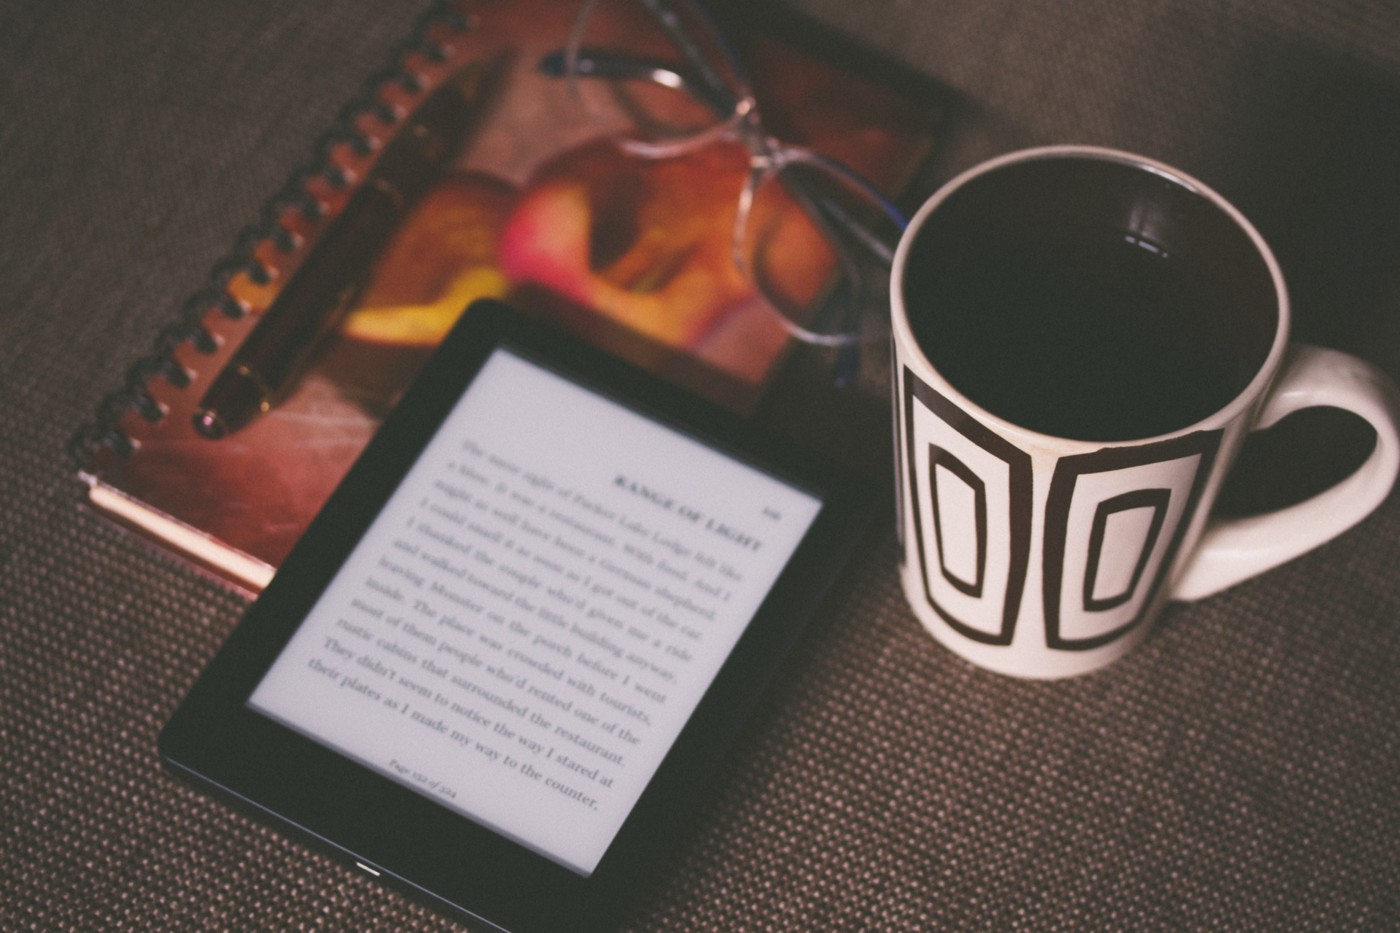 A notebook, Kindle, and mug of coffee sit on a table